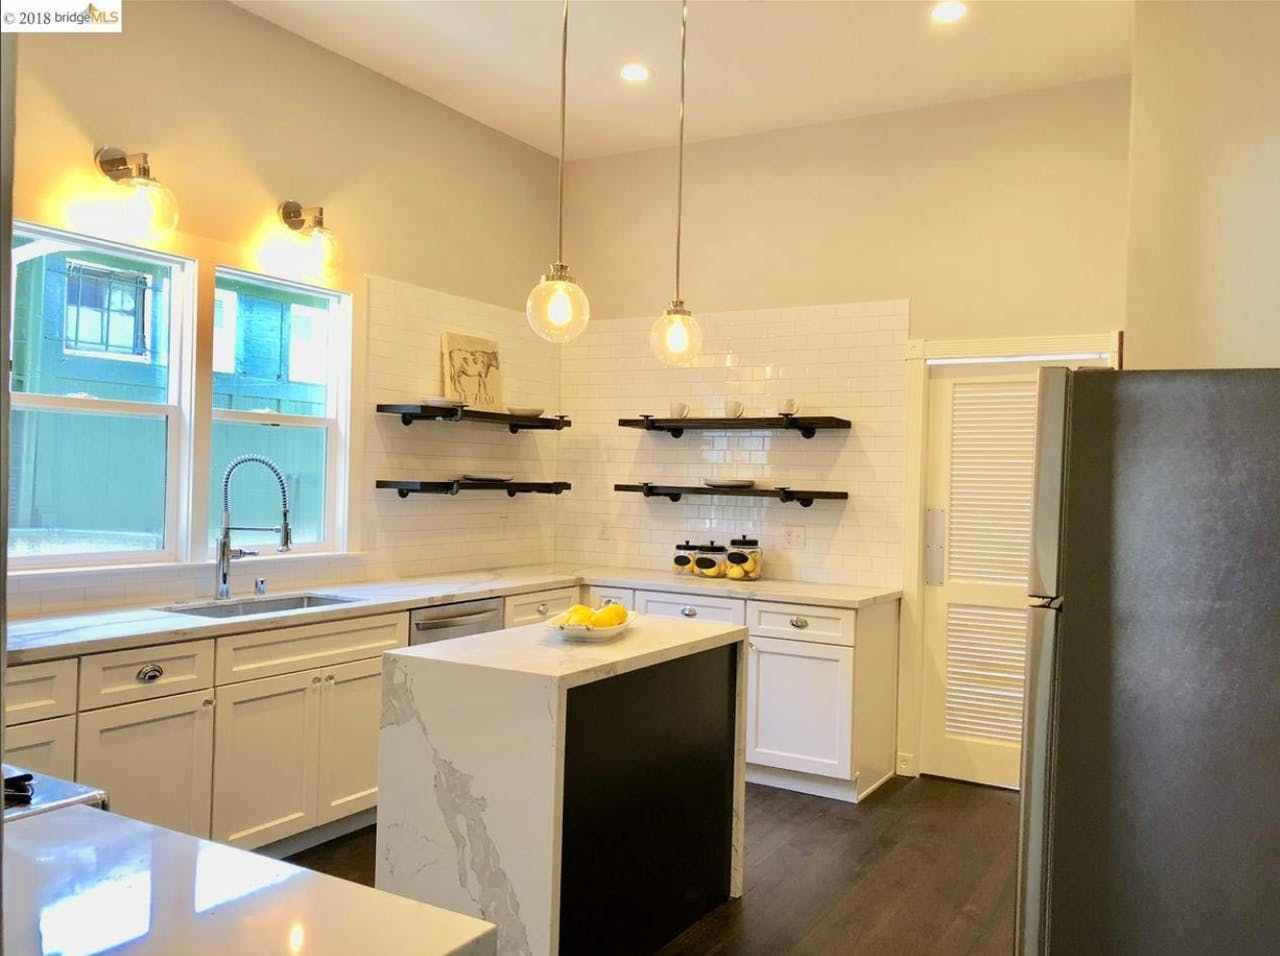 Best 11Th Wood 1 Bedroom Oakland Ca 94607 1 Bedroom House With Pictures